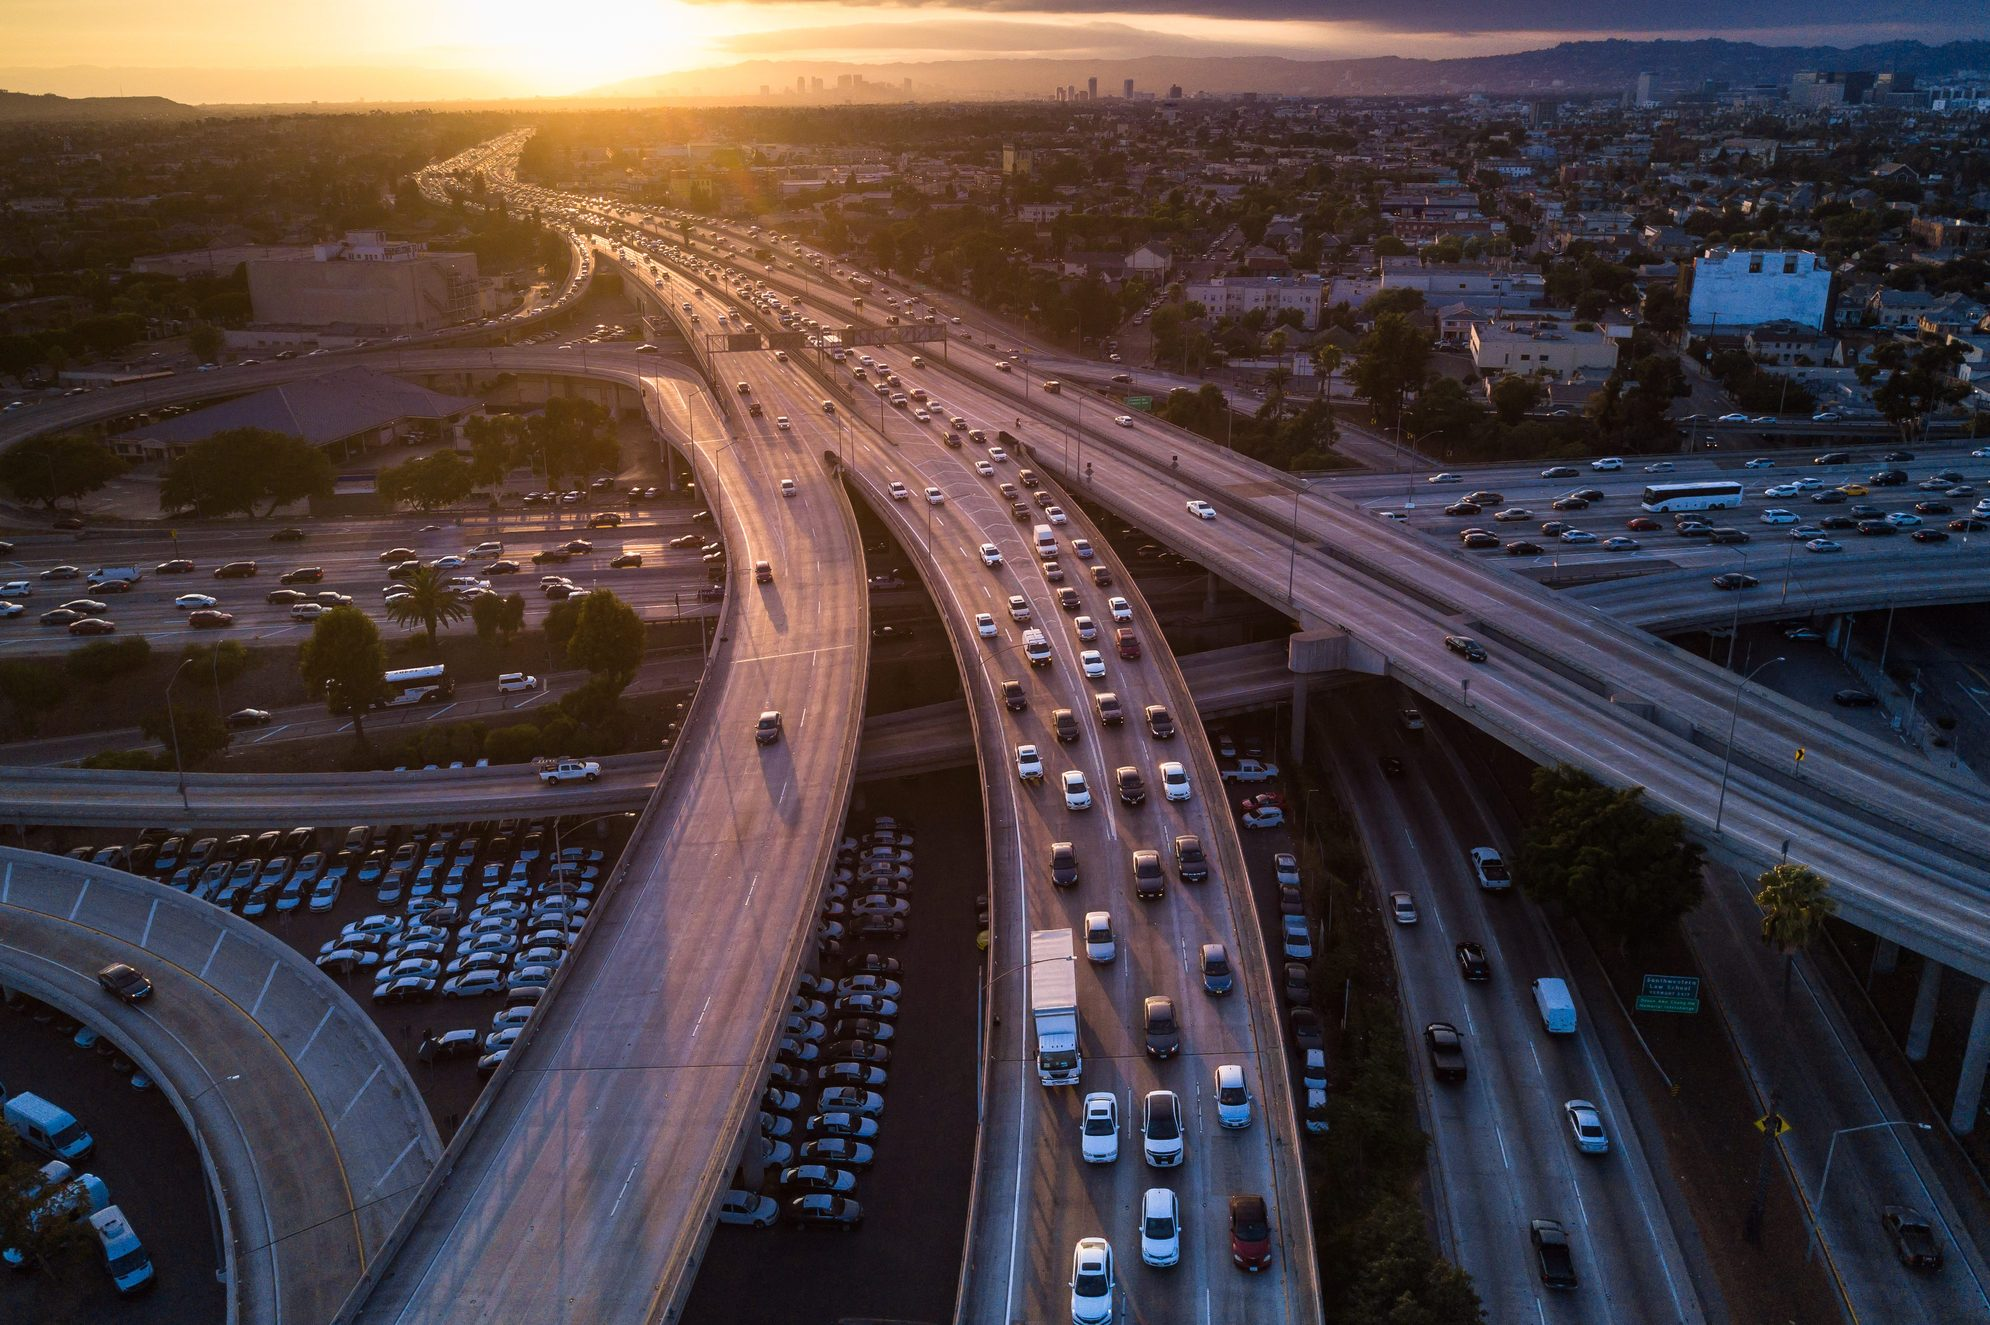 Drone Shot of 10/110 Interchange at Sunset